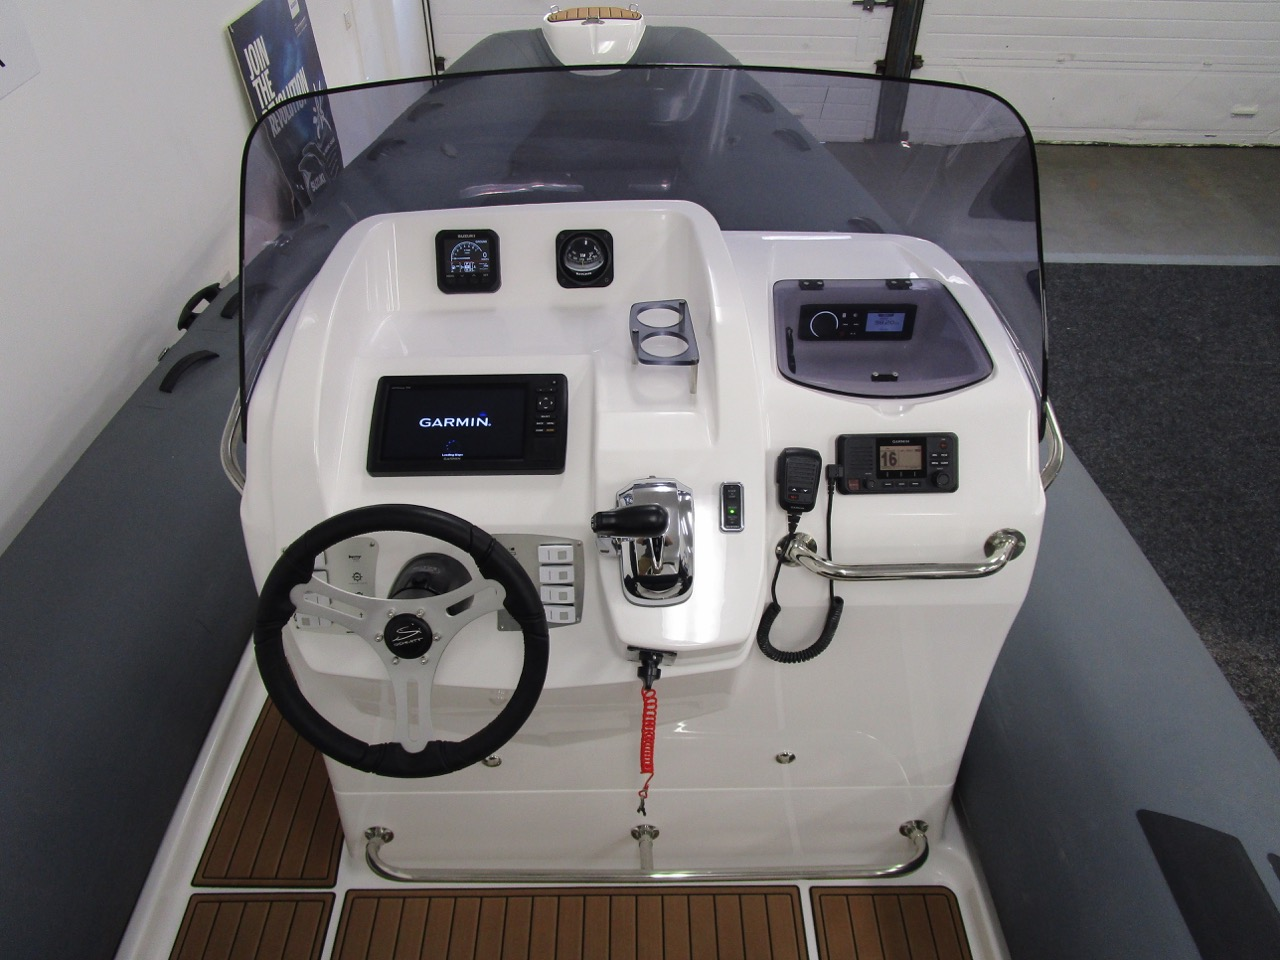 E780 console, instrument covers off